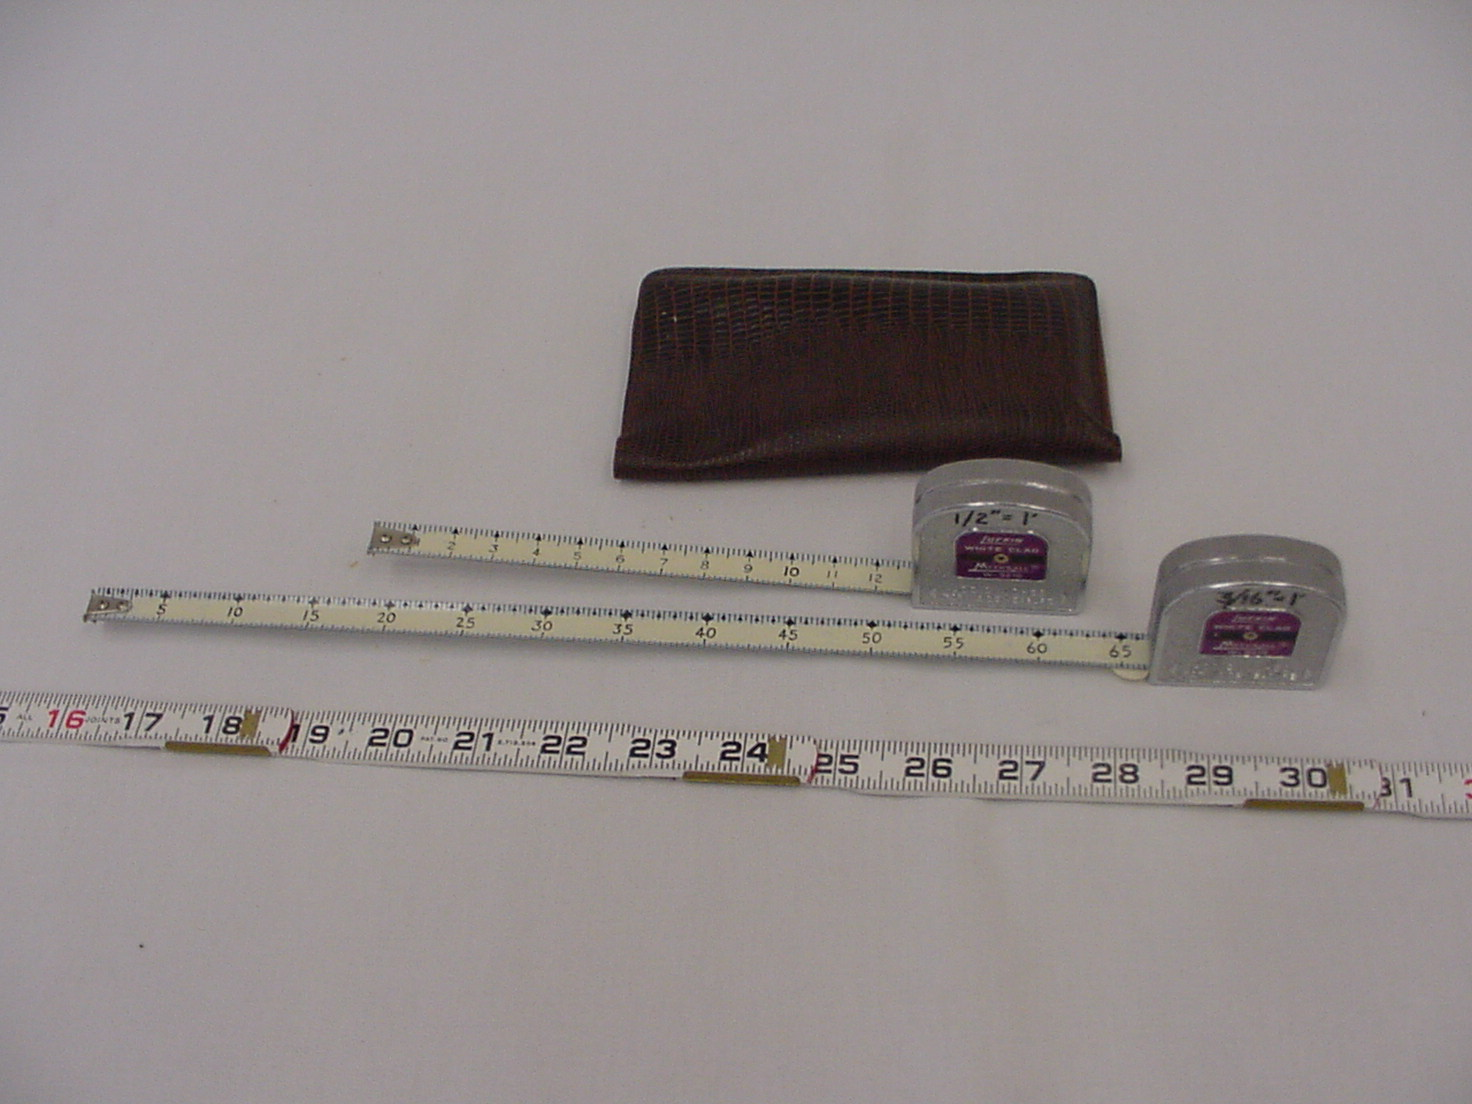 measuring tape and leather case 2.jpg